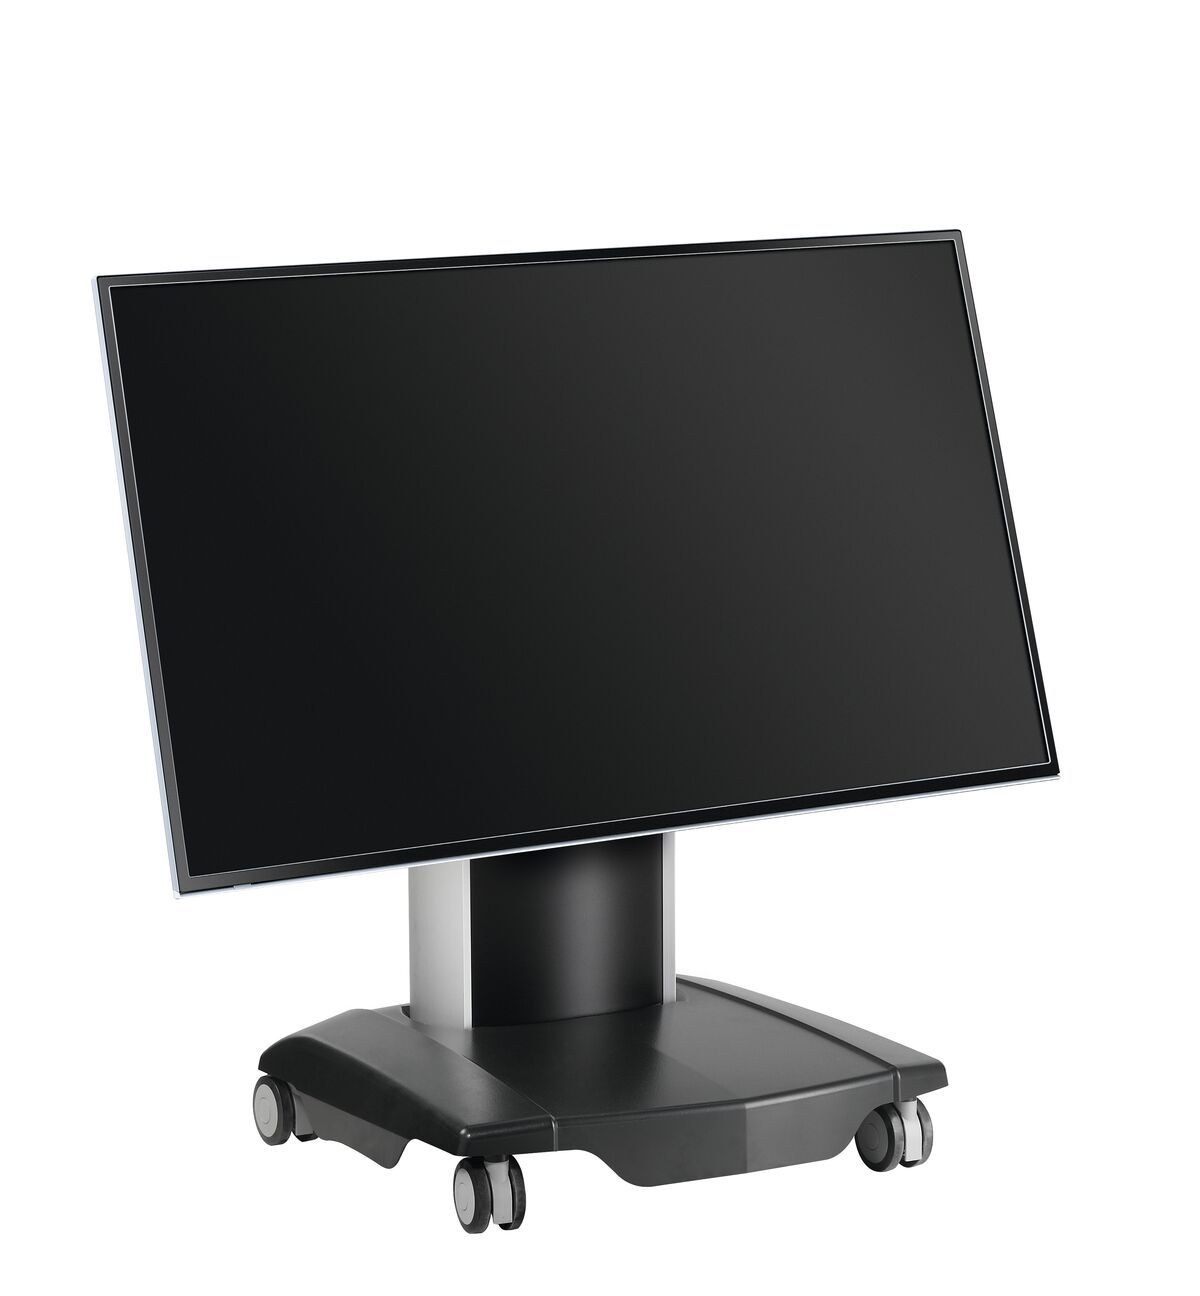 Vogel's PFT 2515 Displaywagen - Application